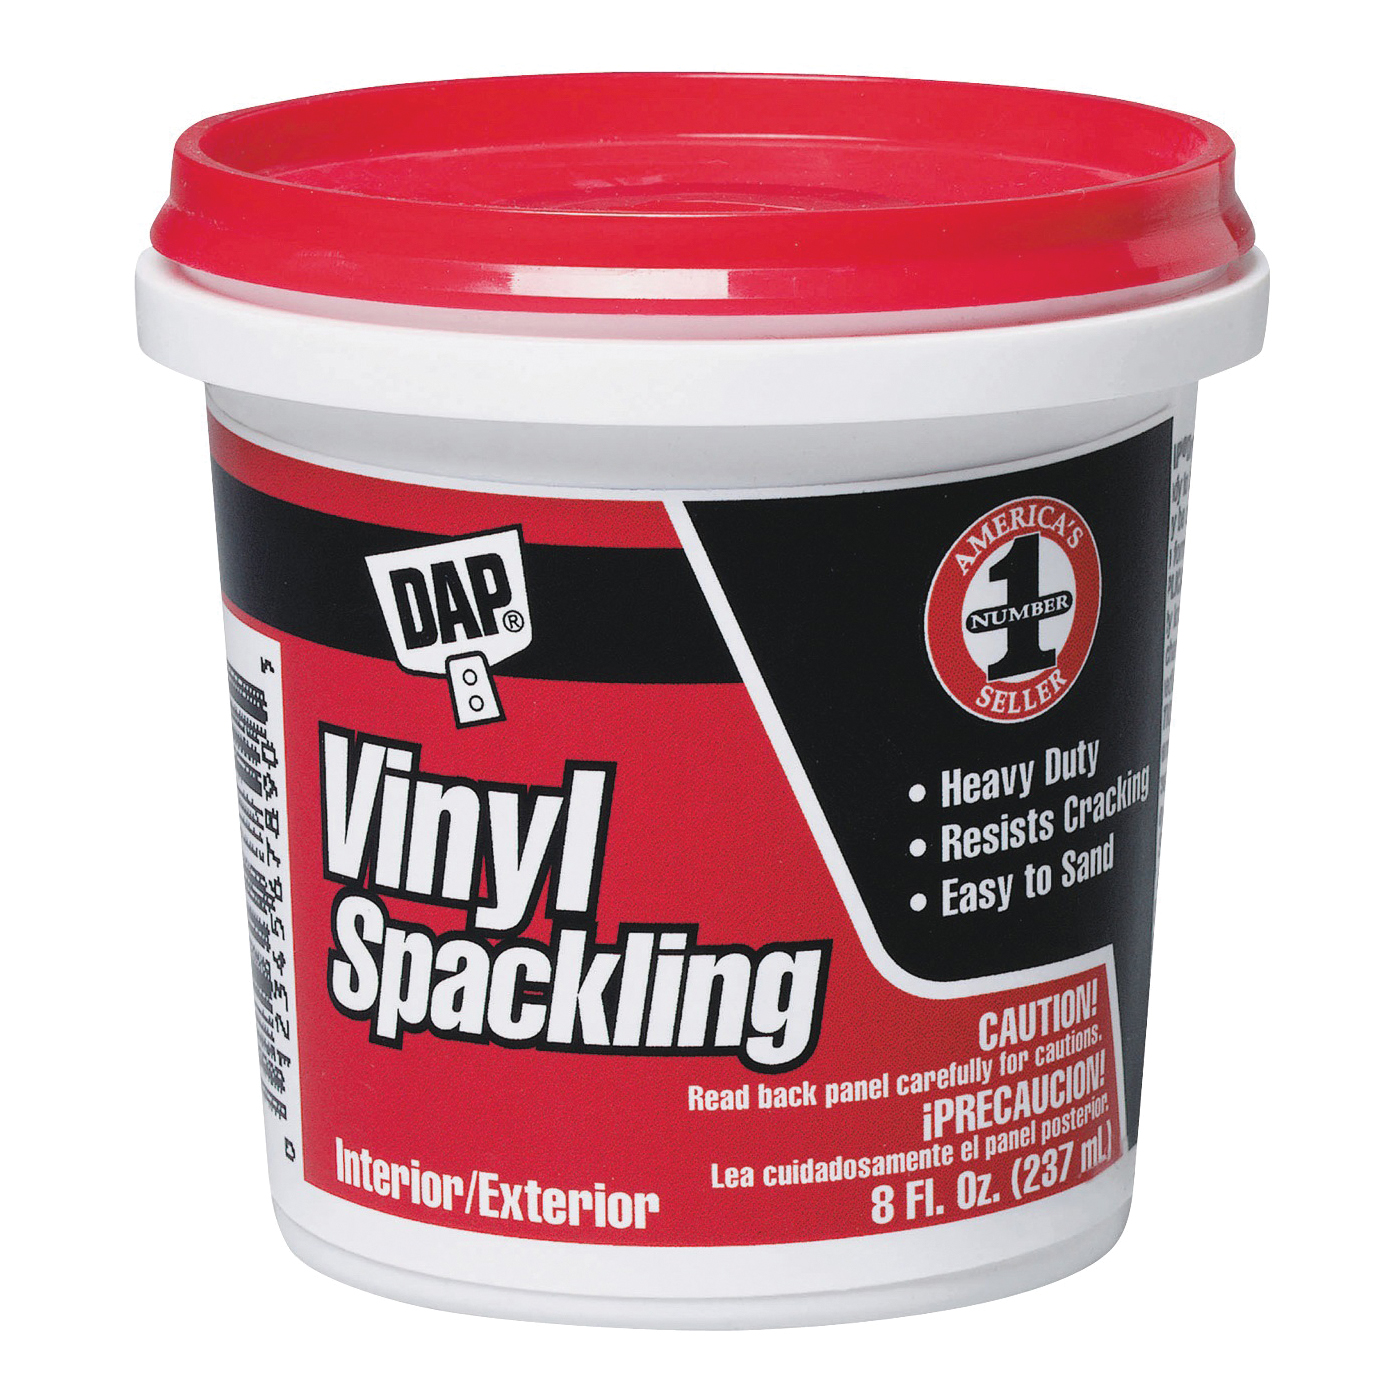 Picture of DAP 12130 Spackling Paste White, White, 0.5 pt, Tub